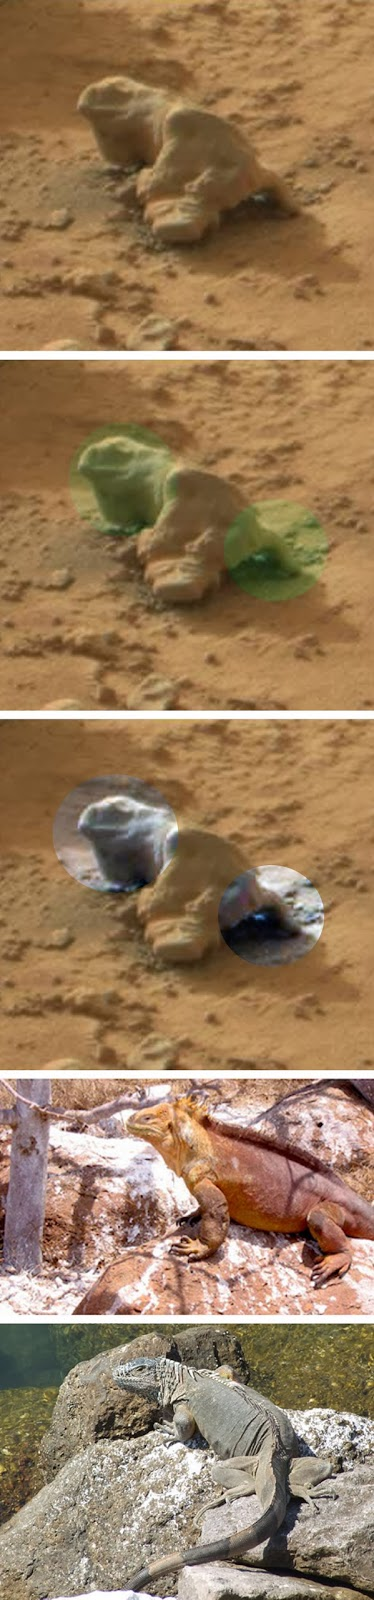 nasa mars lizard - photo #6